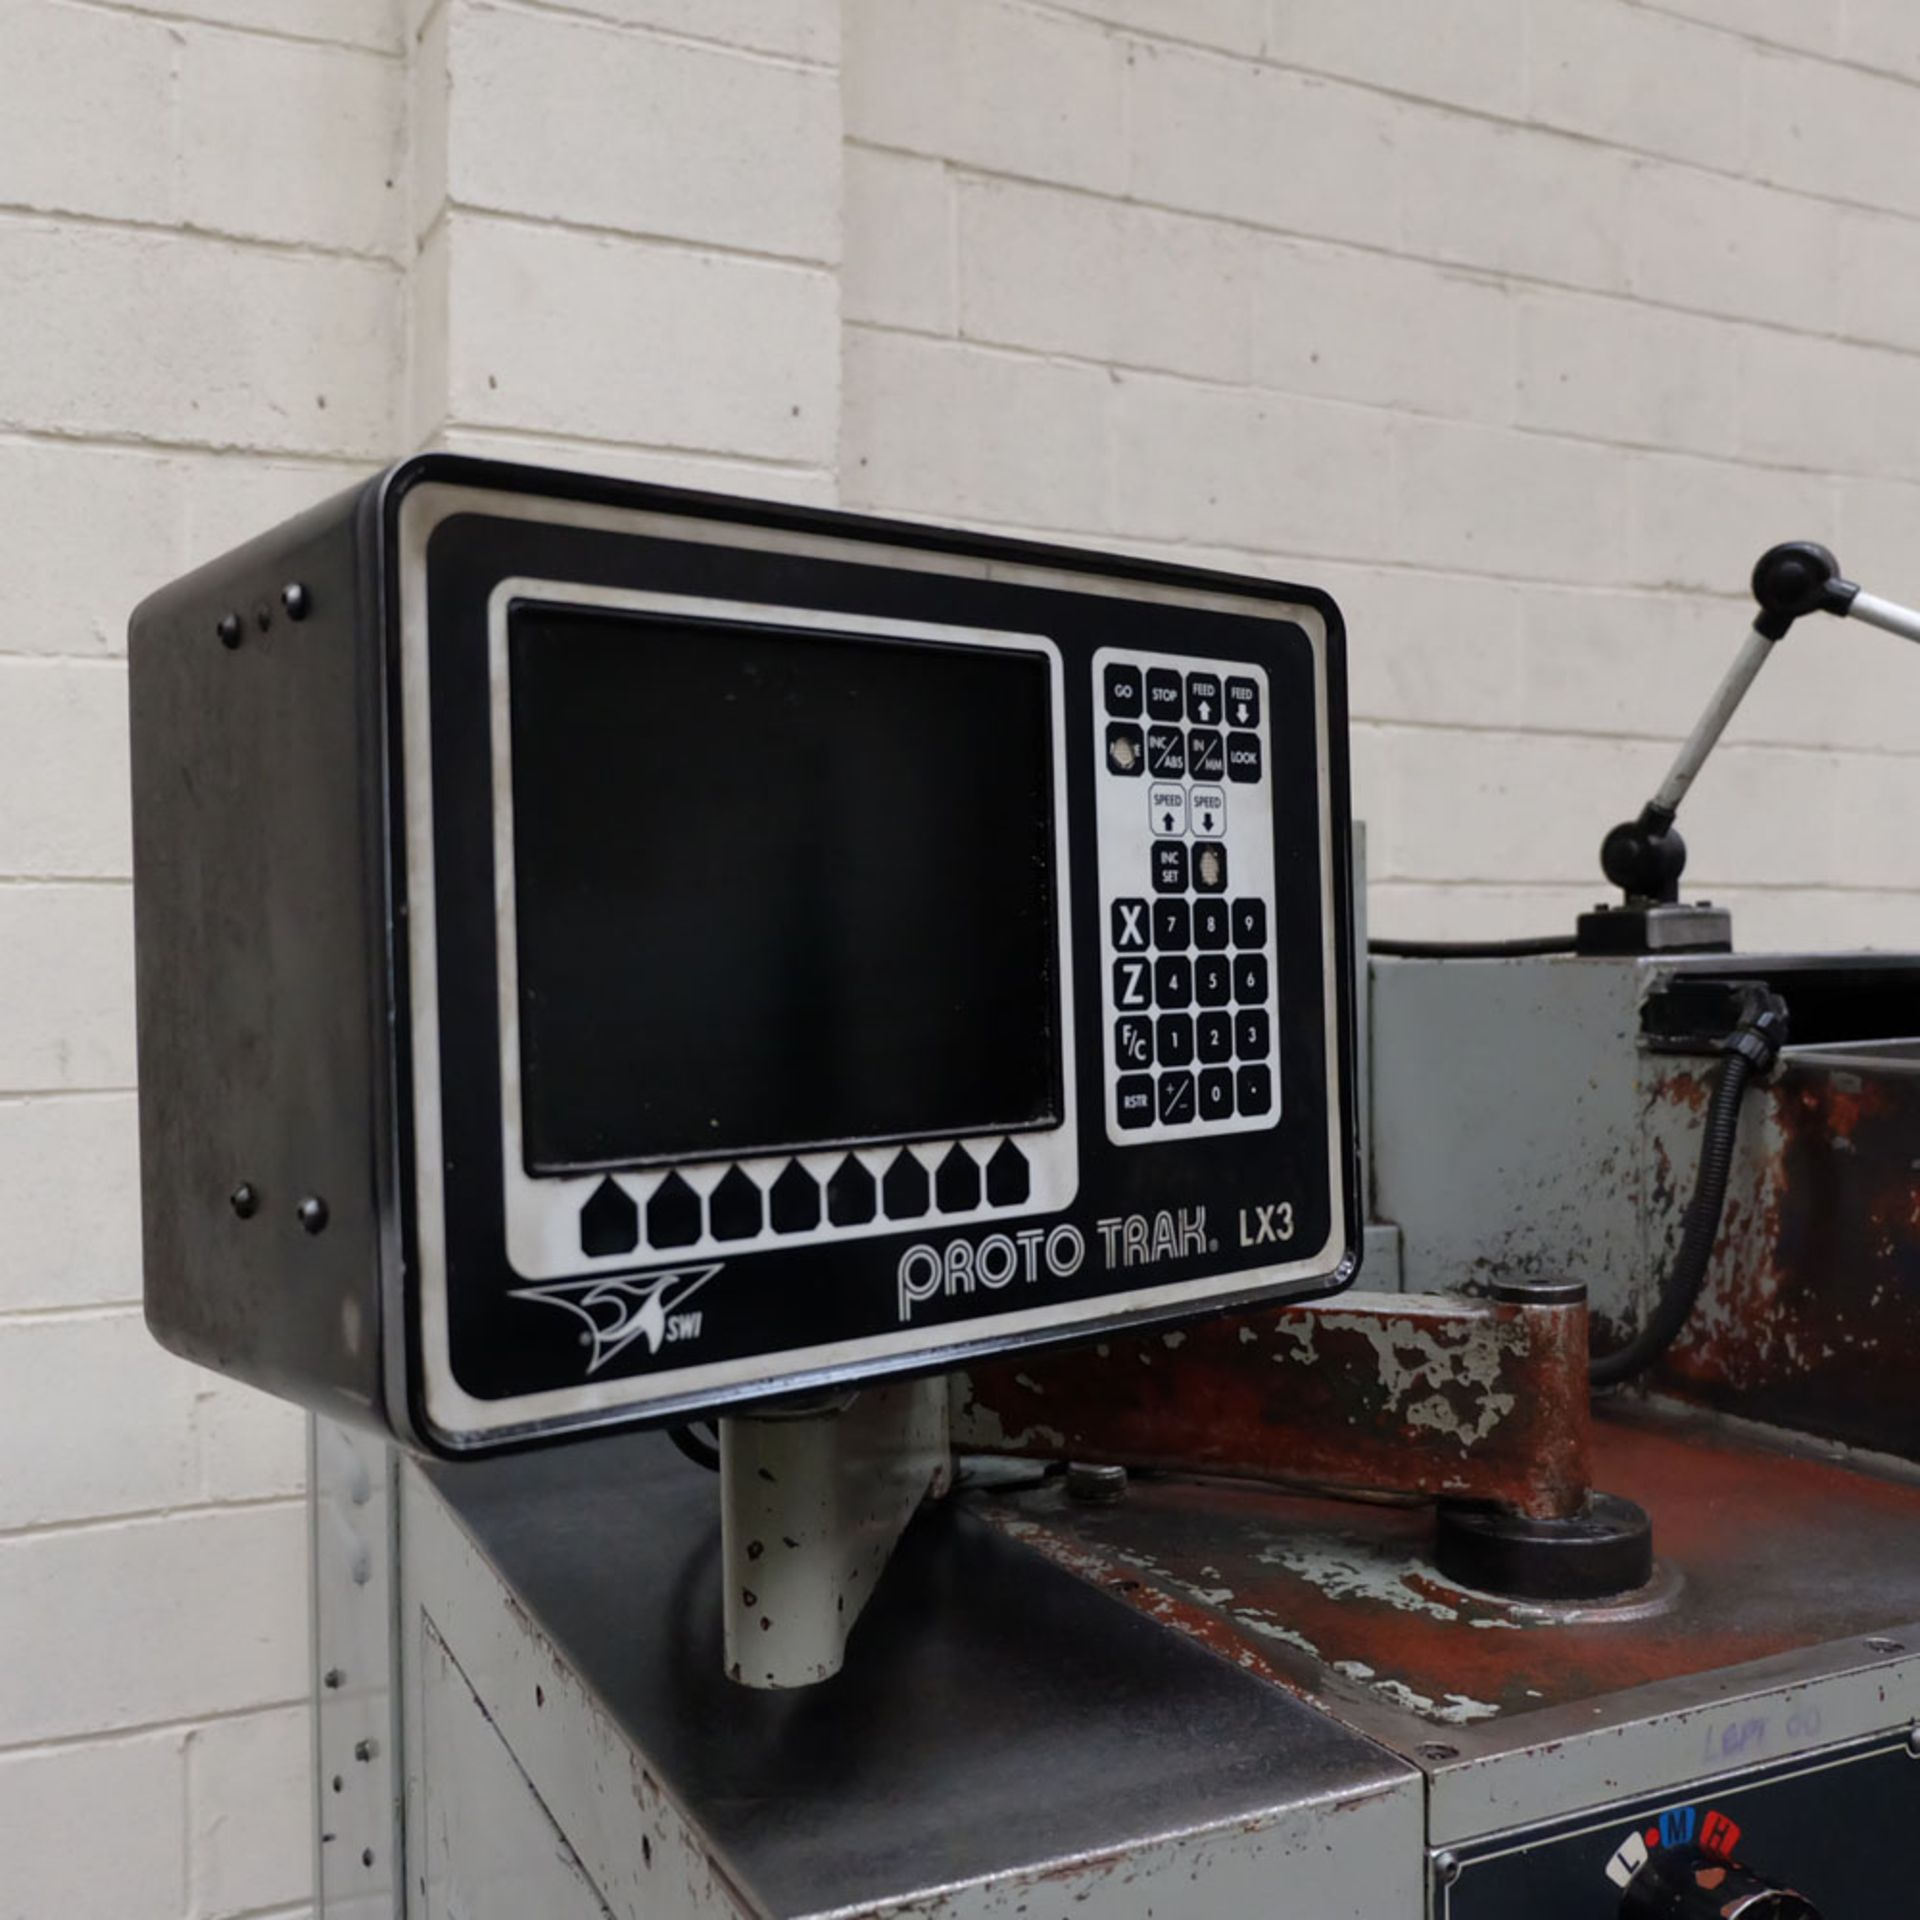 XYZ Proturn 420 Model L480 CNC Lathe with ProtoTrak LX3 Control.Swing Over Bed: 480mm. - Image 5 of 6